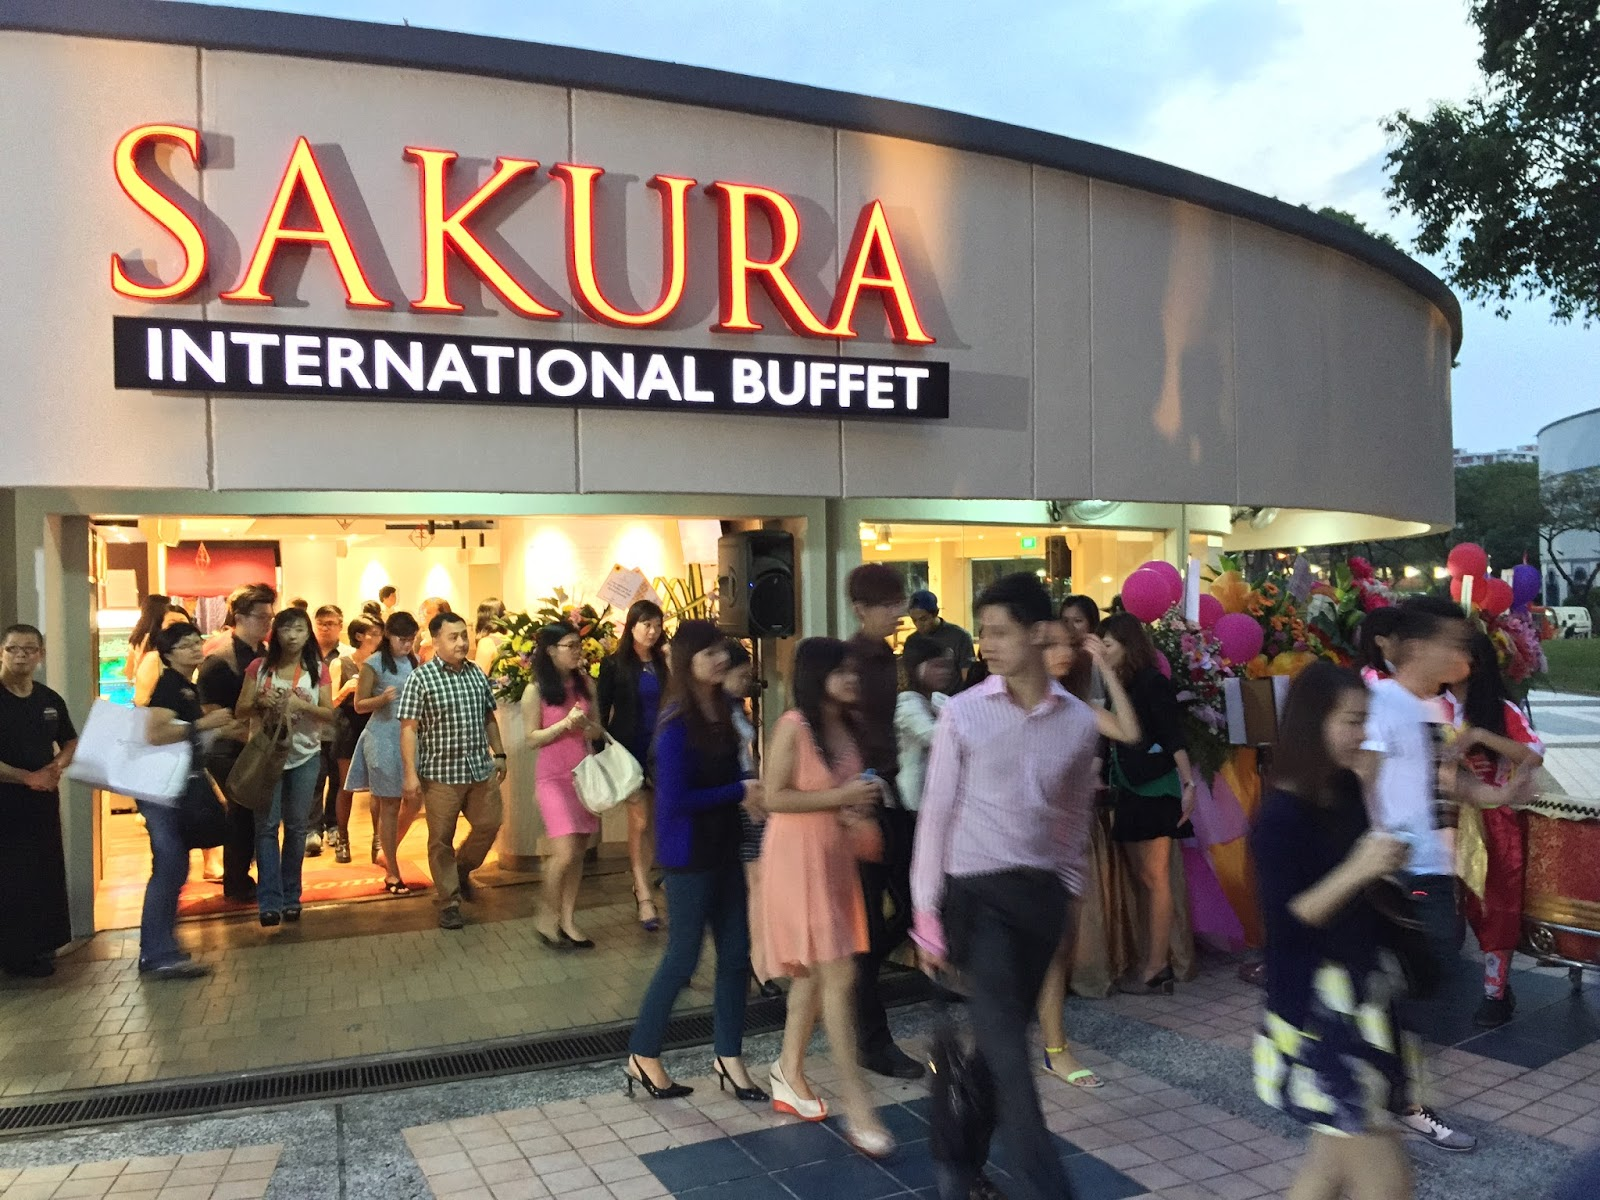 Sakura International Buffet at Yio Chu Kang 2